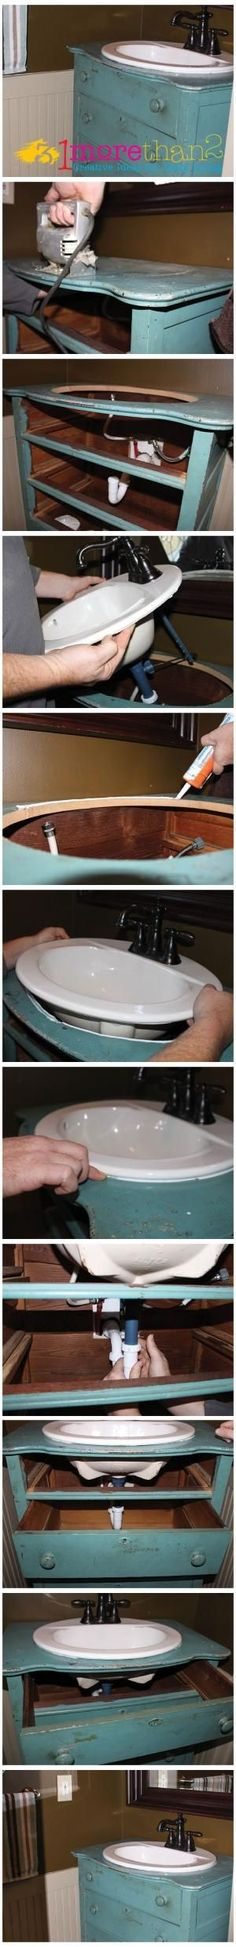 DIY. How to make a bathroom sink vanity from an old dresser. Step by step. by mimiistocool